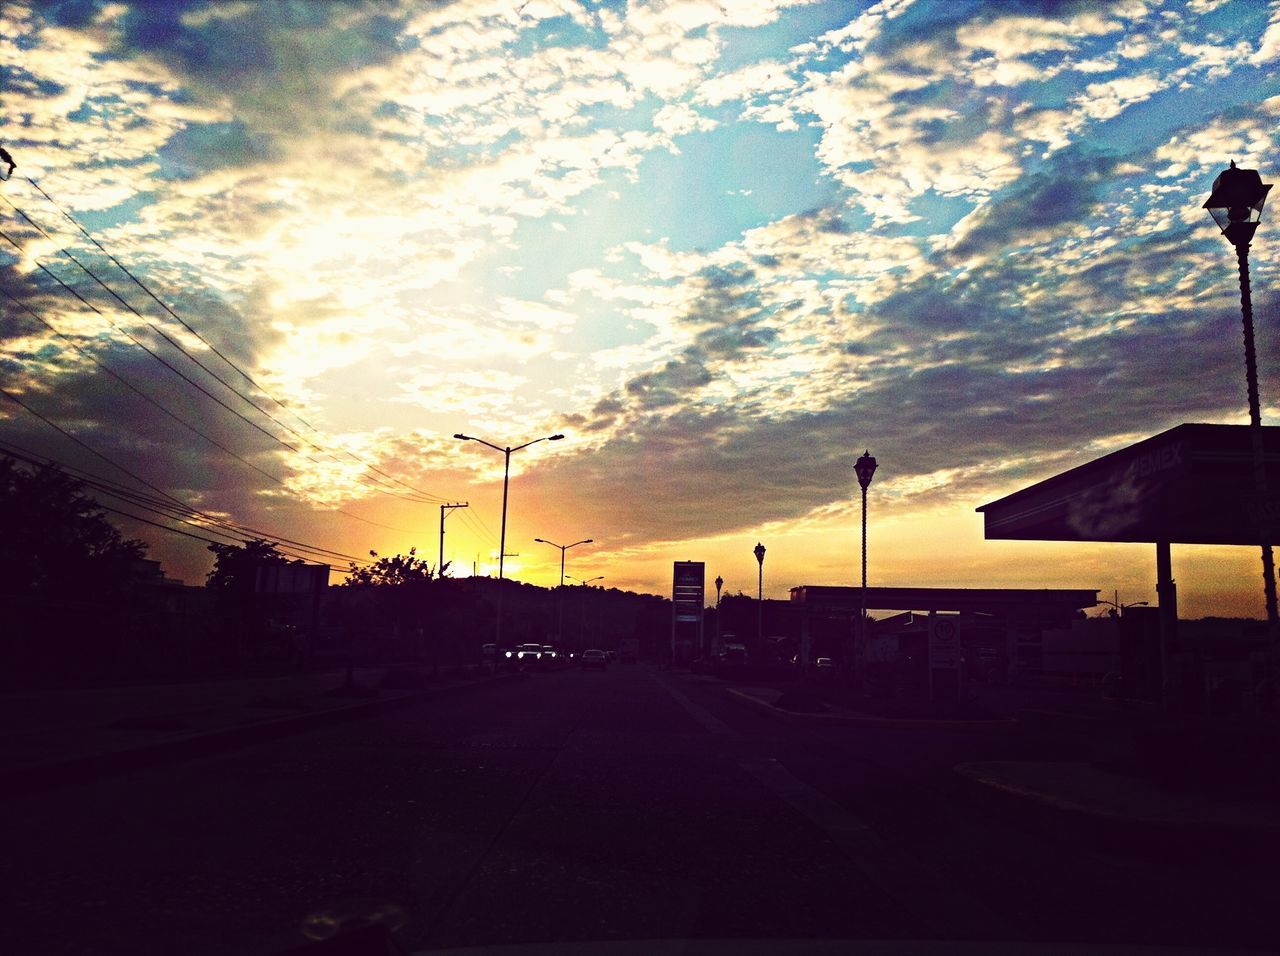 Atardecer Taking Photos On The Road With BlaBlaCar